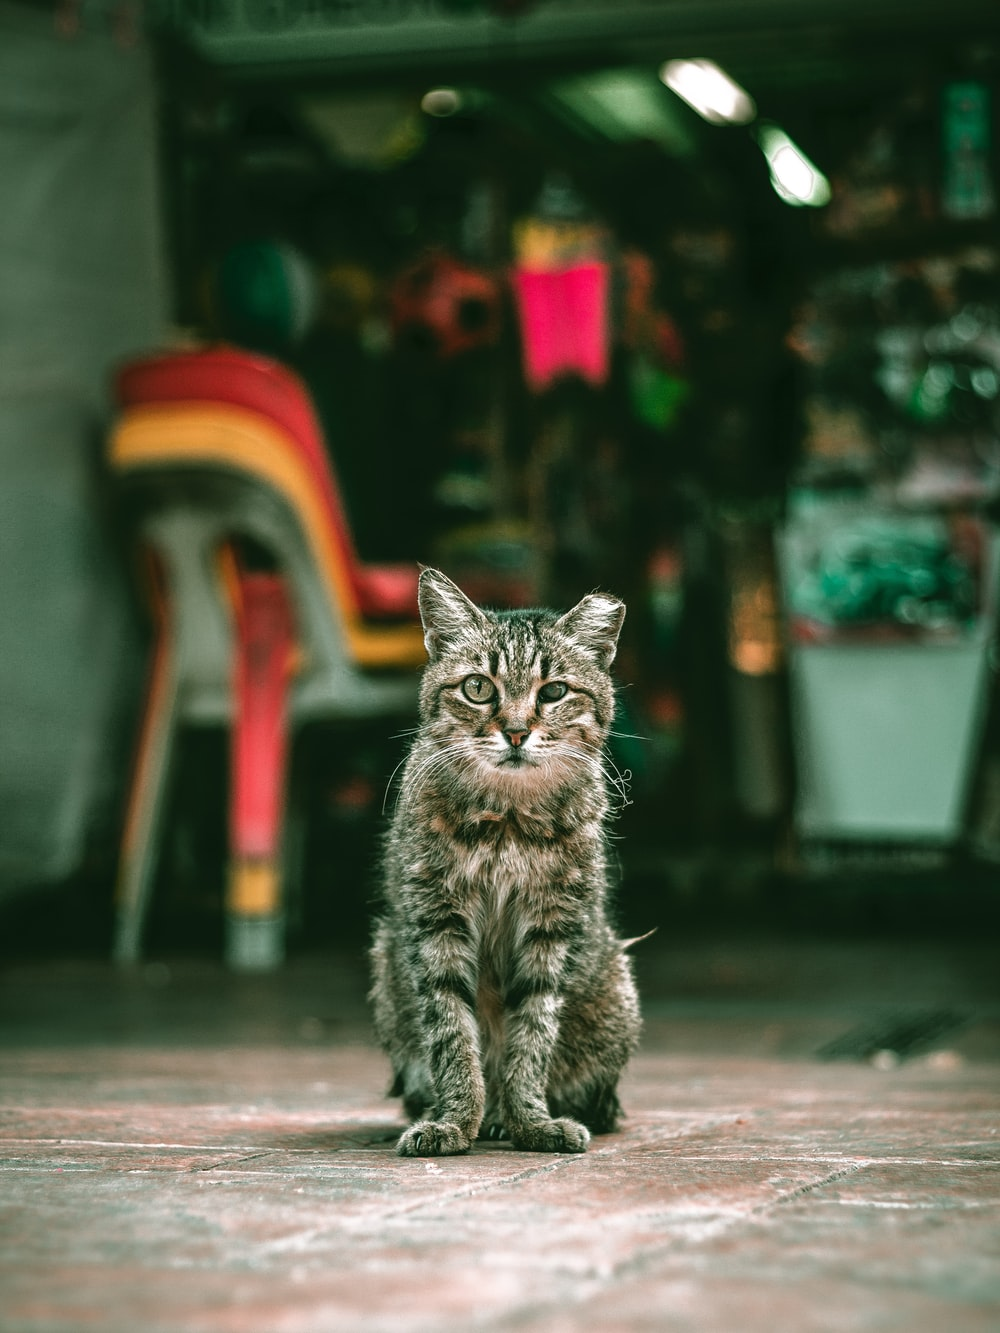 brown tabby cat sitting near chairs